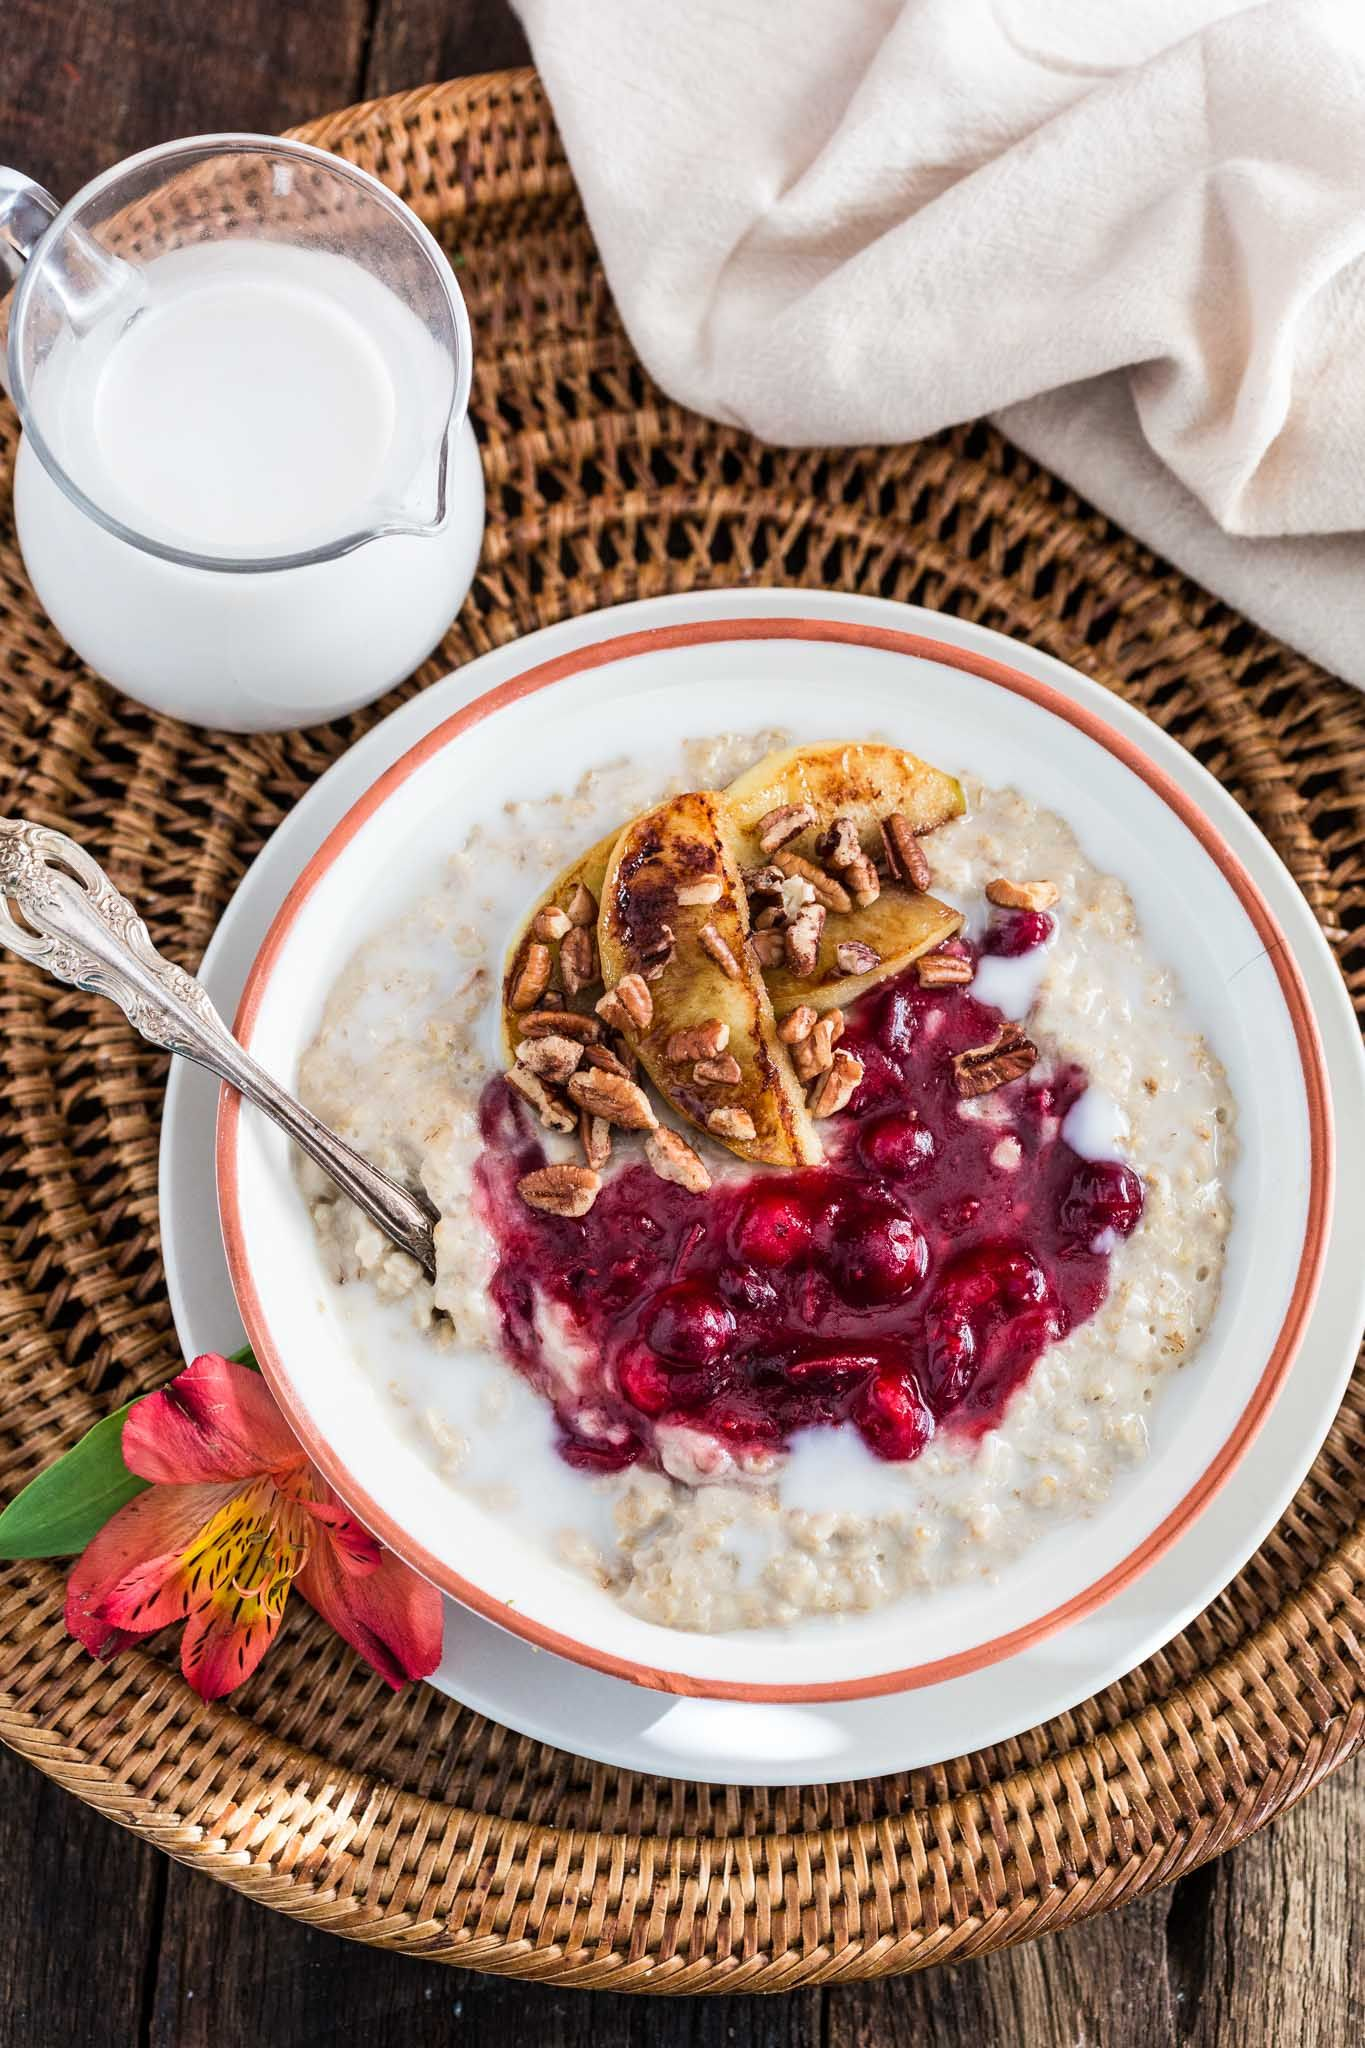 Christmas Oats Porridge with Cranberry Sauce, Apples and Pecans | www.oliviascuisine.com | Waking up to a special breakfast on Christmas morning is a must! This festive porridge is not only delicious but also heartwarming. Sweet, tart, creamy and crunchy goodness. What else could we wish for?: